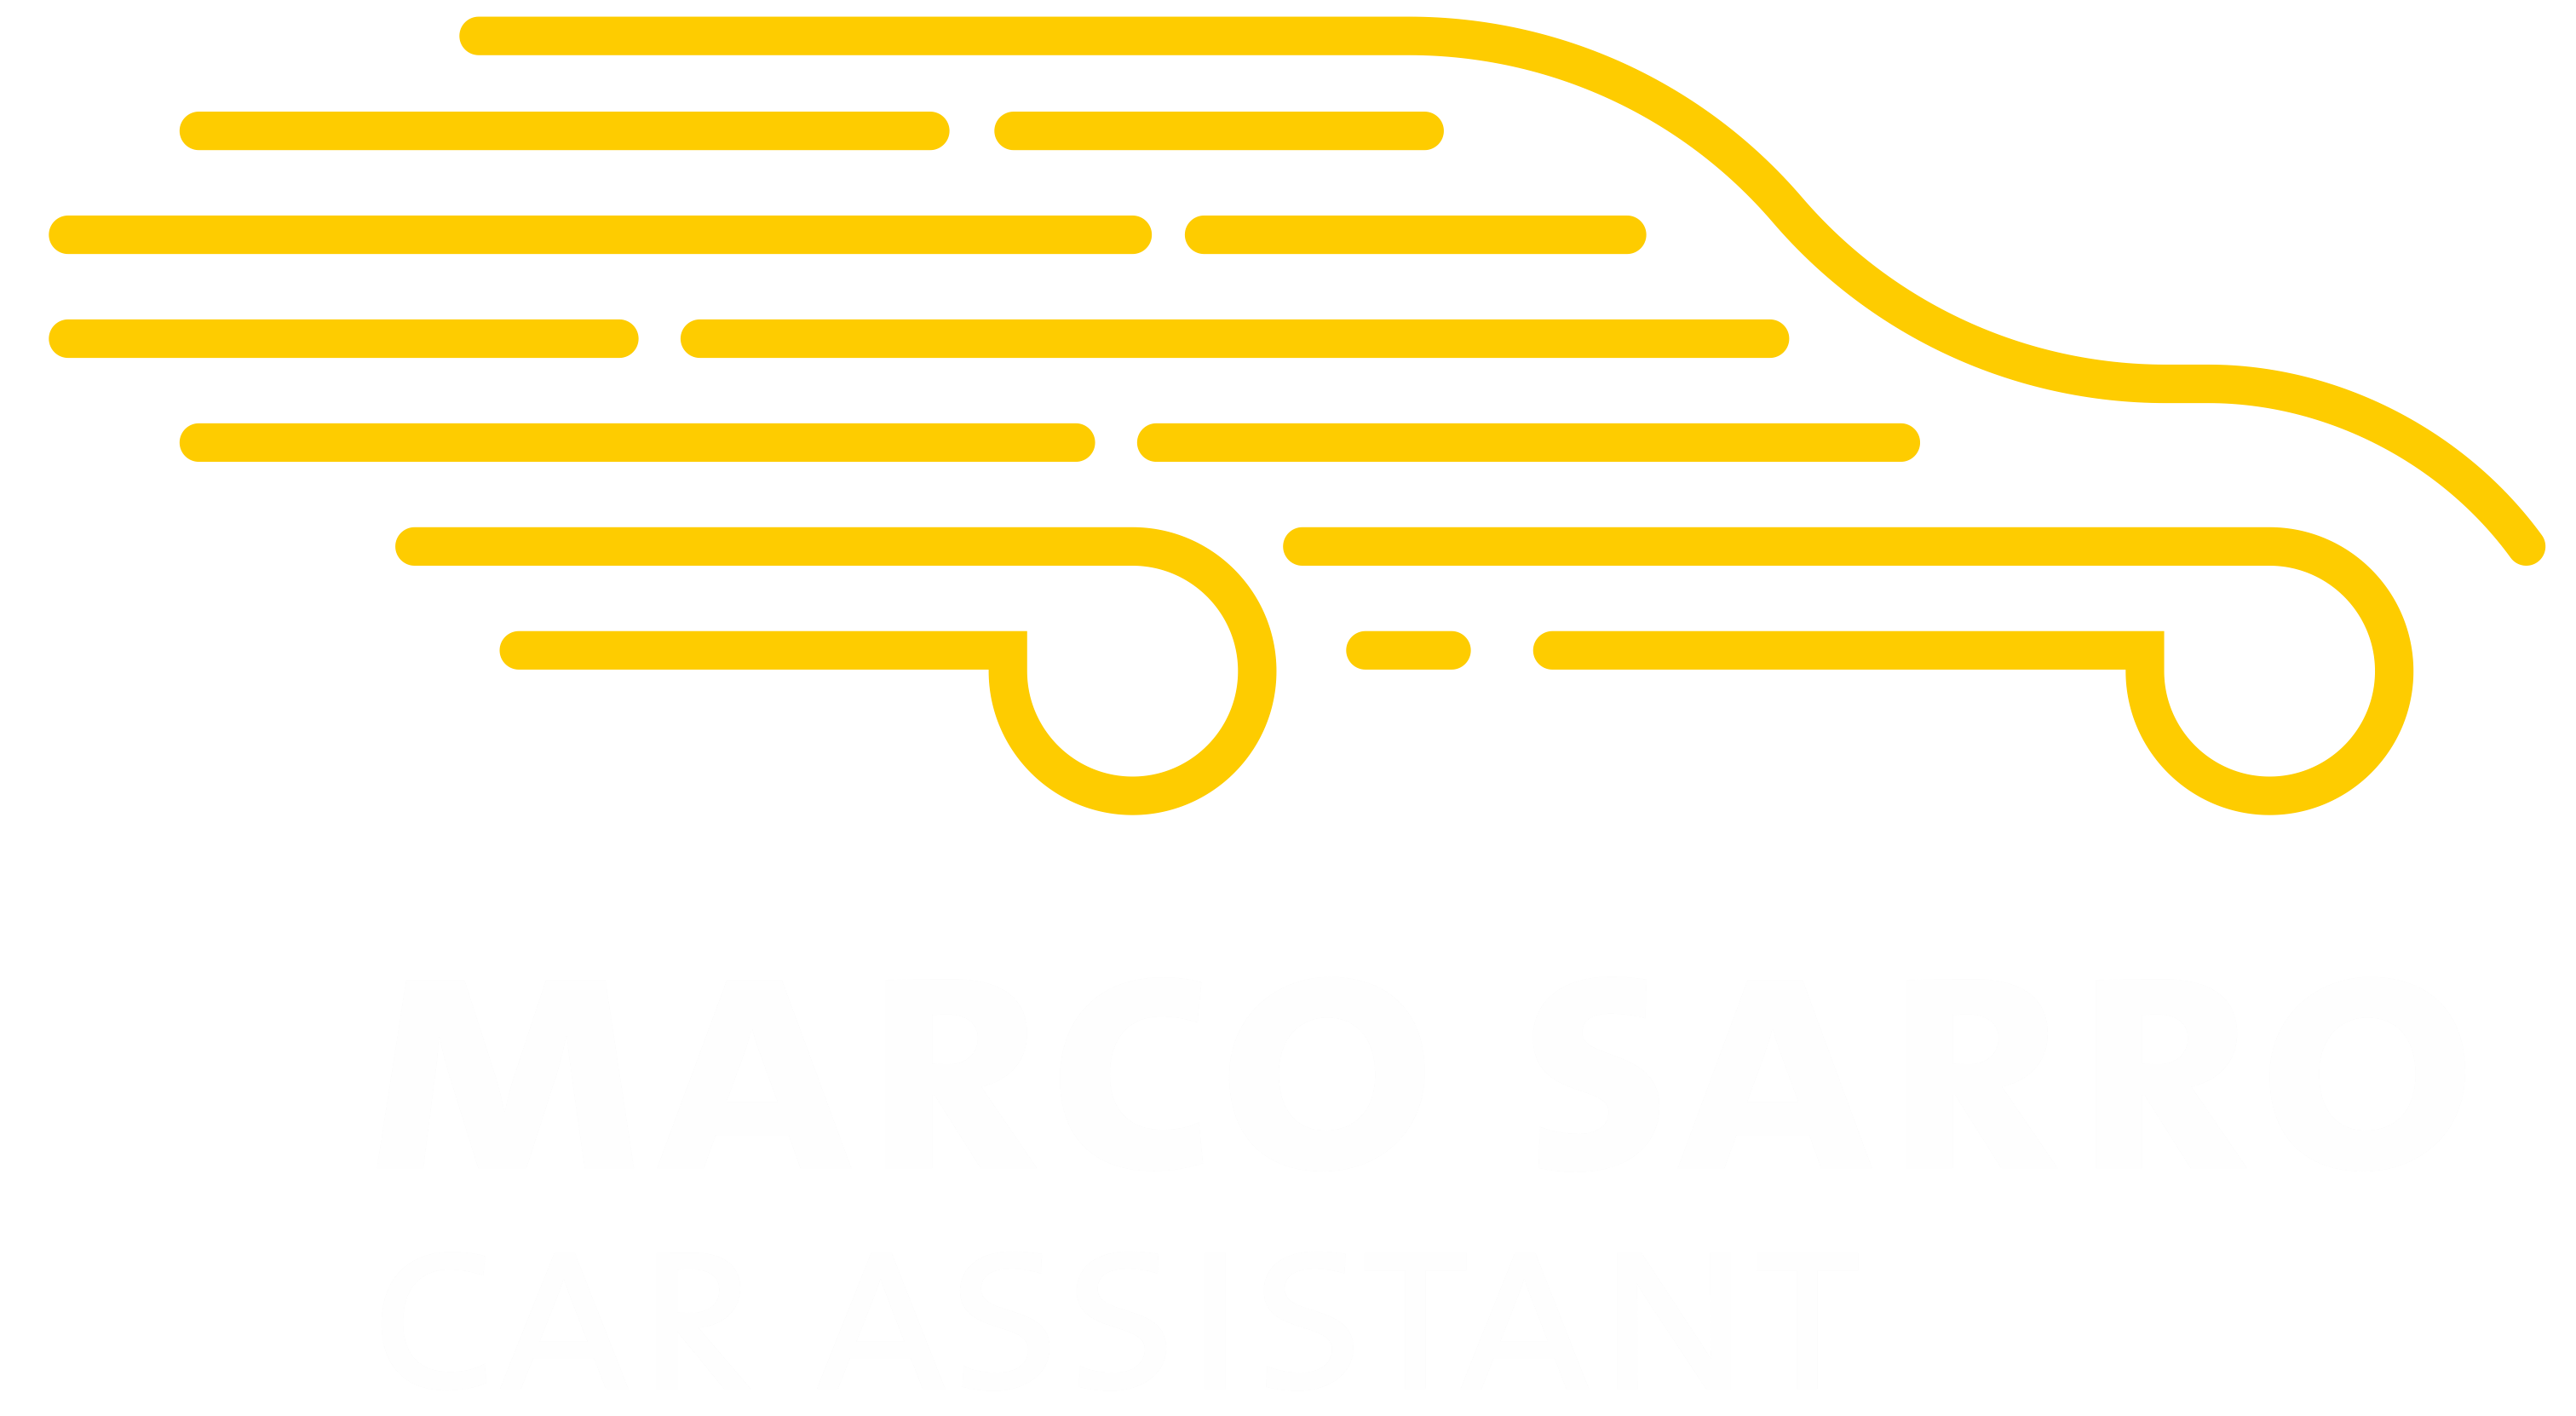 Marco Sarro  Car Assistant